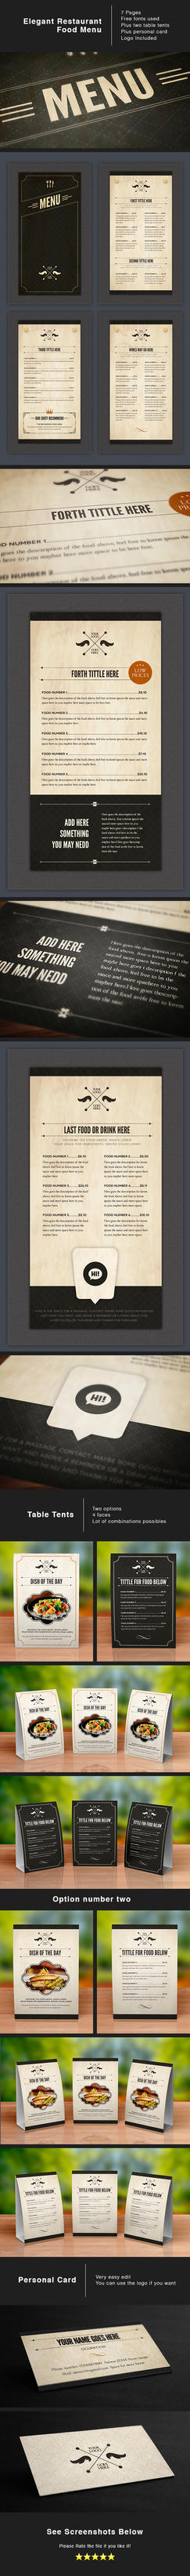 Design Food Stationery by luuqas